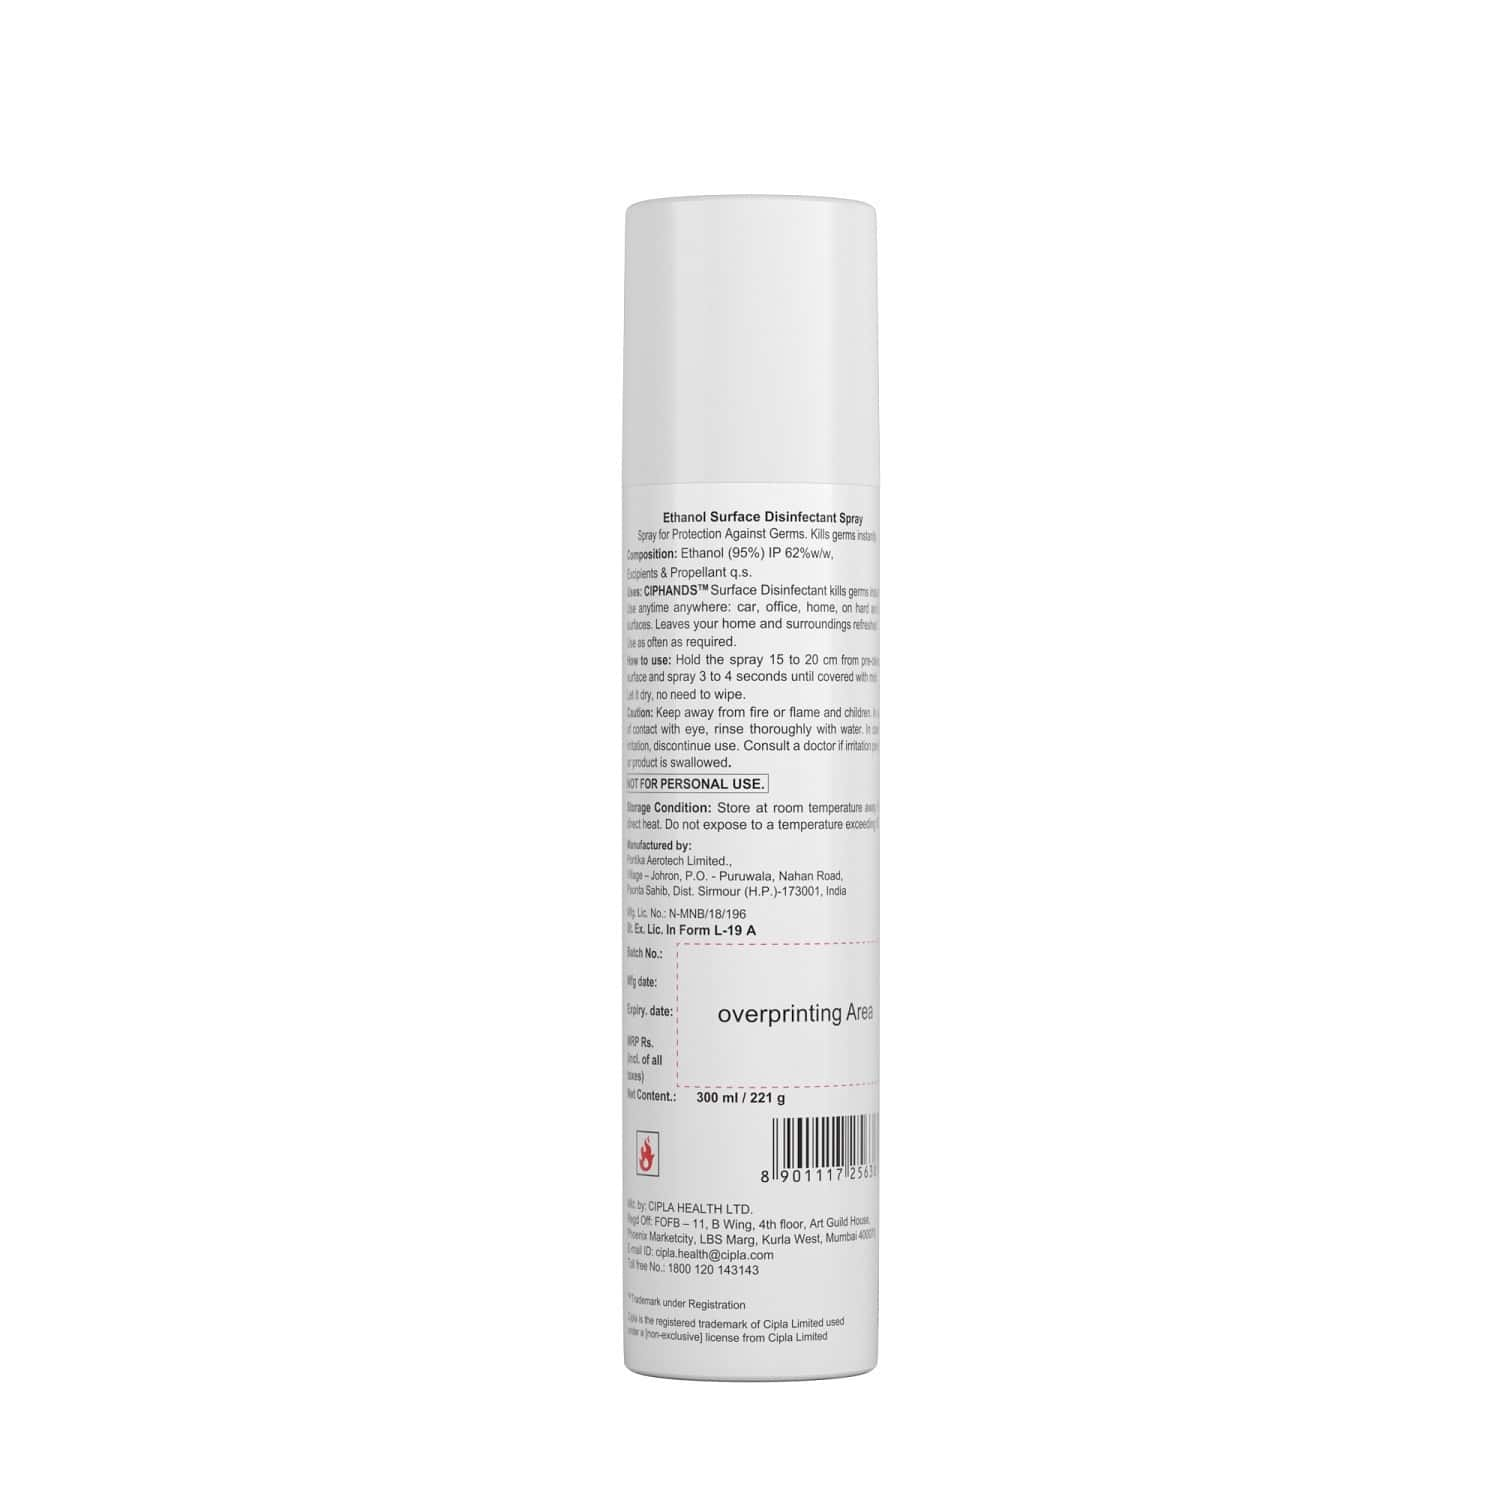 Cipla Ciphands Disinfectant Spray - 300 Ml